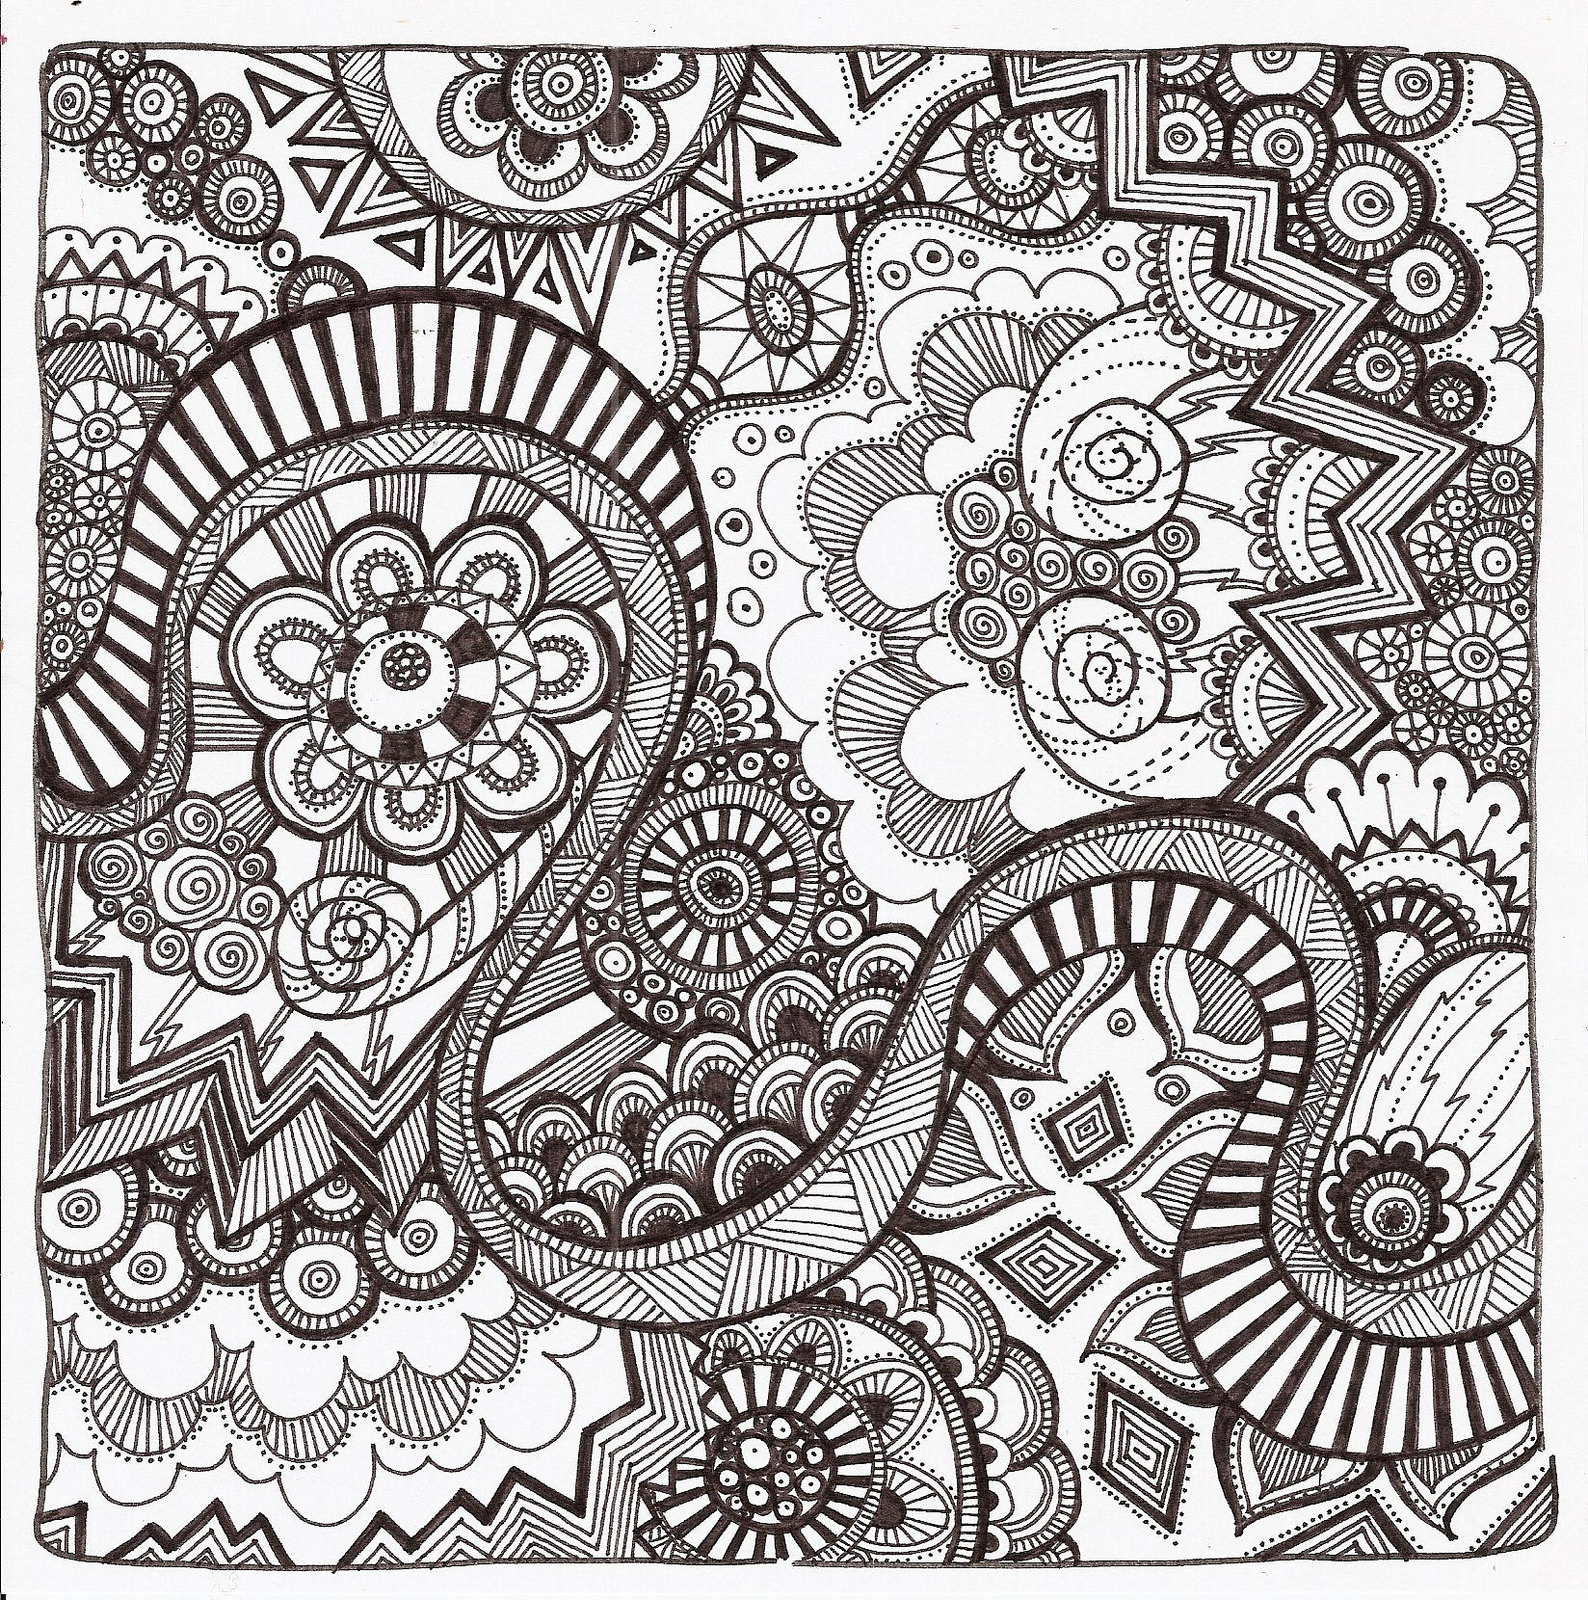 Printable coloring pages zentangle - Free Printable Zentangle Coloring Pages For Adults